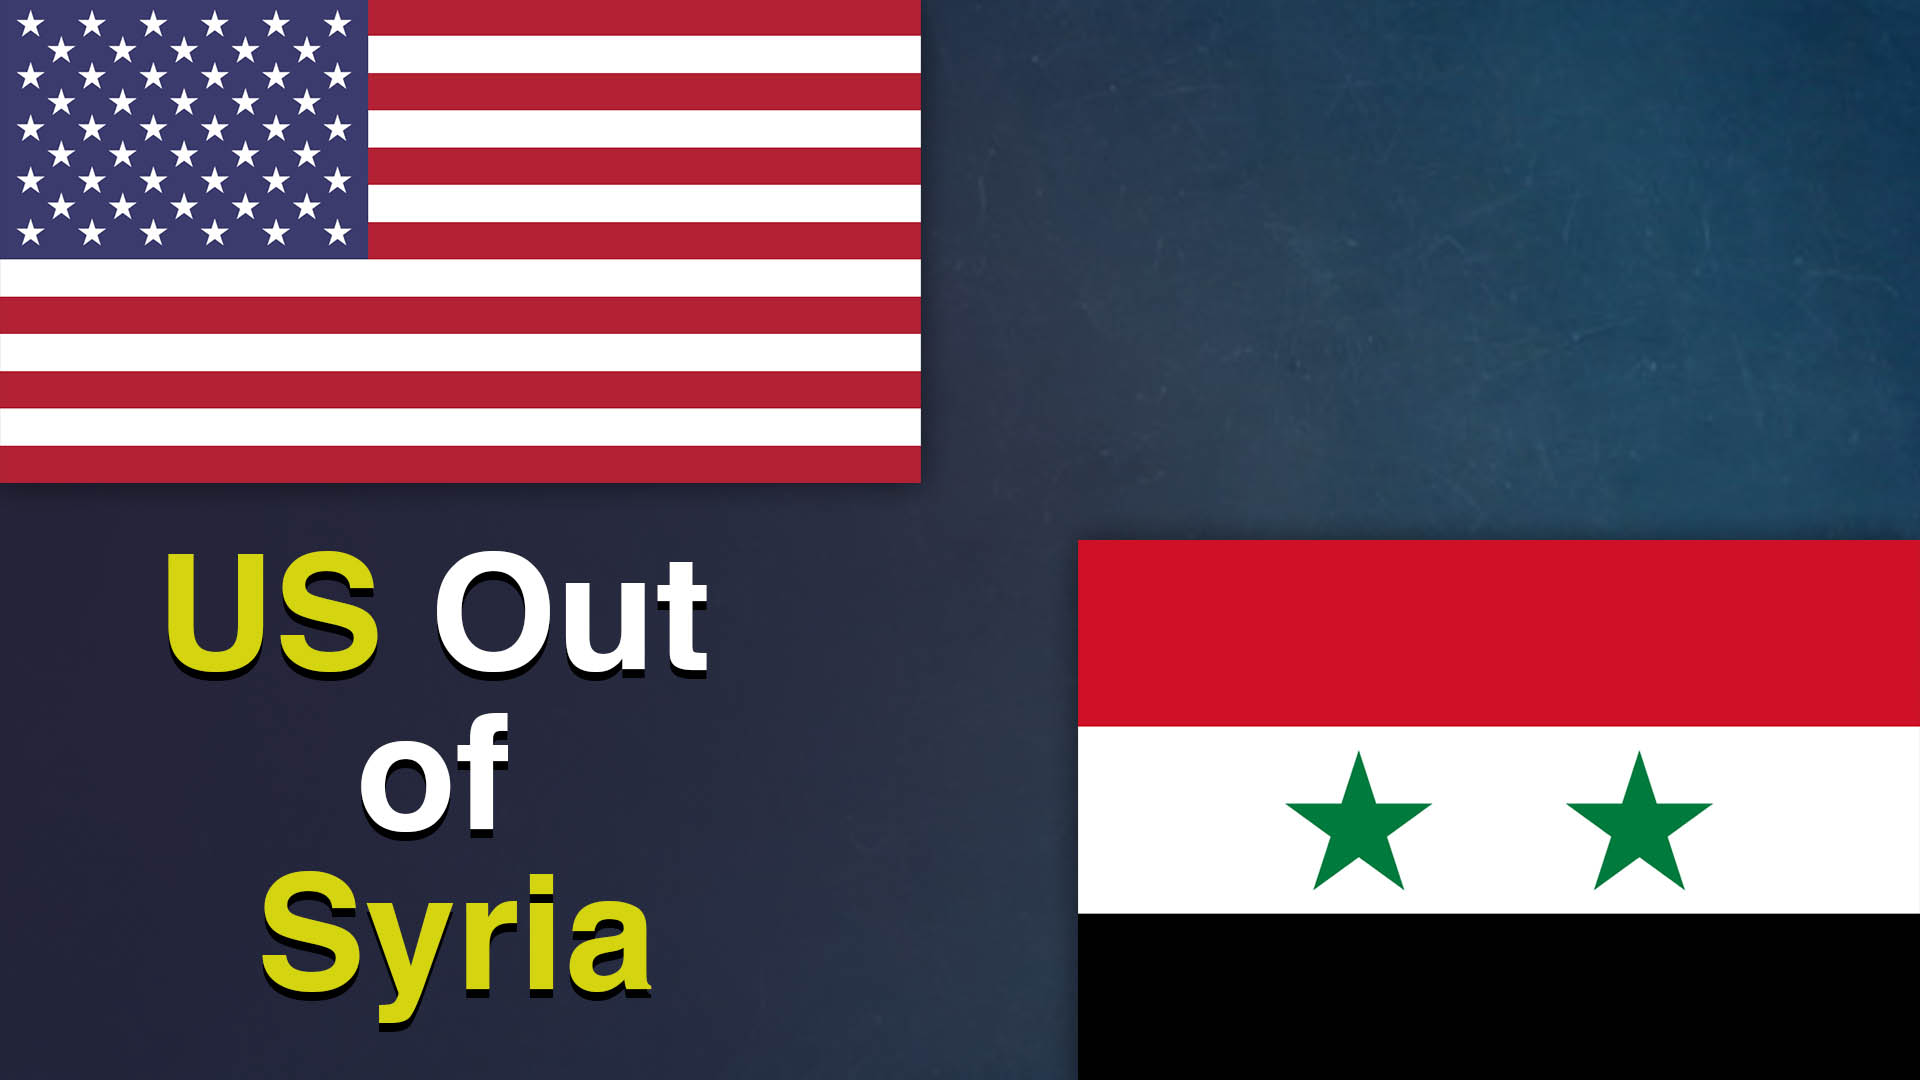 USA Out of Syria